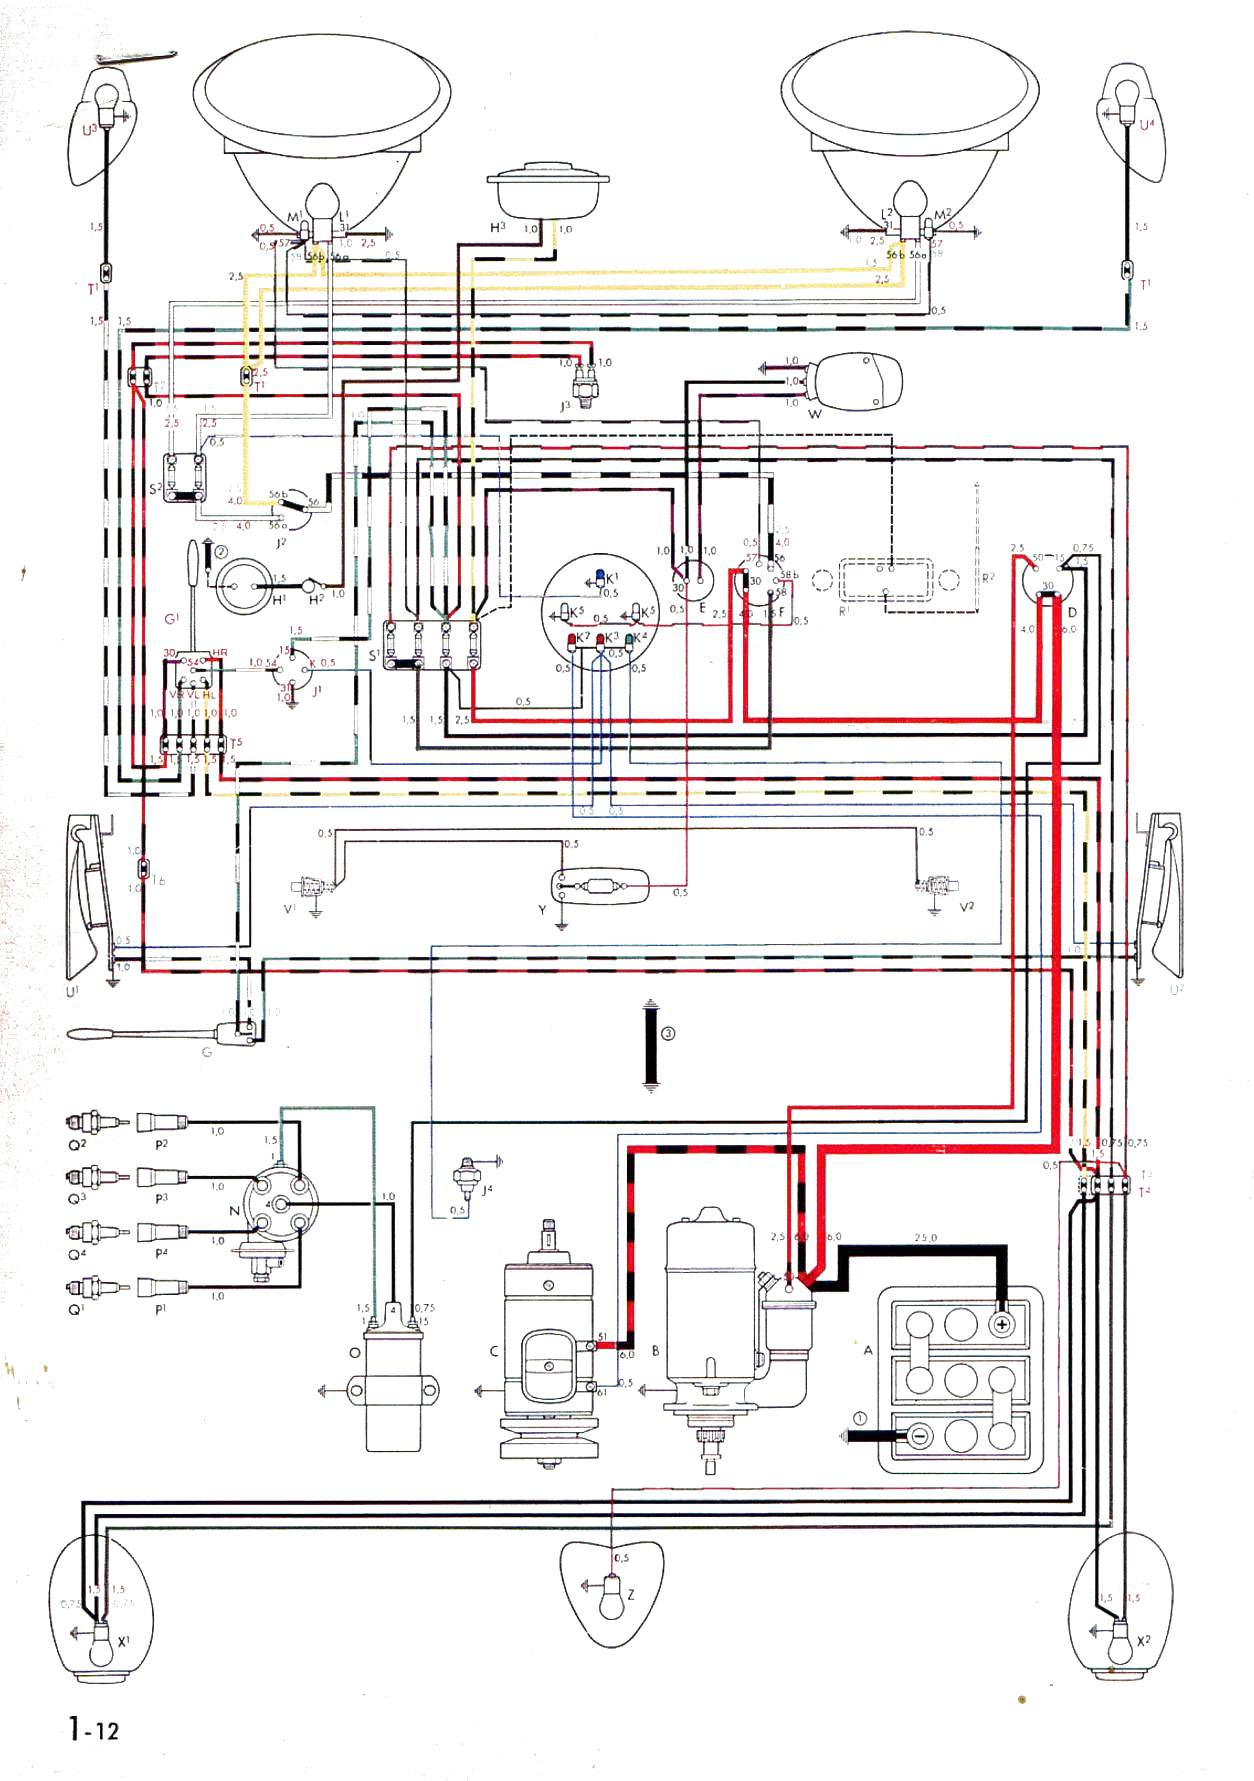 1972 Vw Trike Engine Wiring Diagram Wire Data Schema 1961 Bug Free Download Schematic 65 Harness Trusted Diagrams U2022 Rh Sivamuni Com 1968 Turn Signal